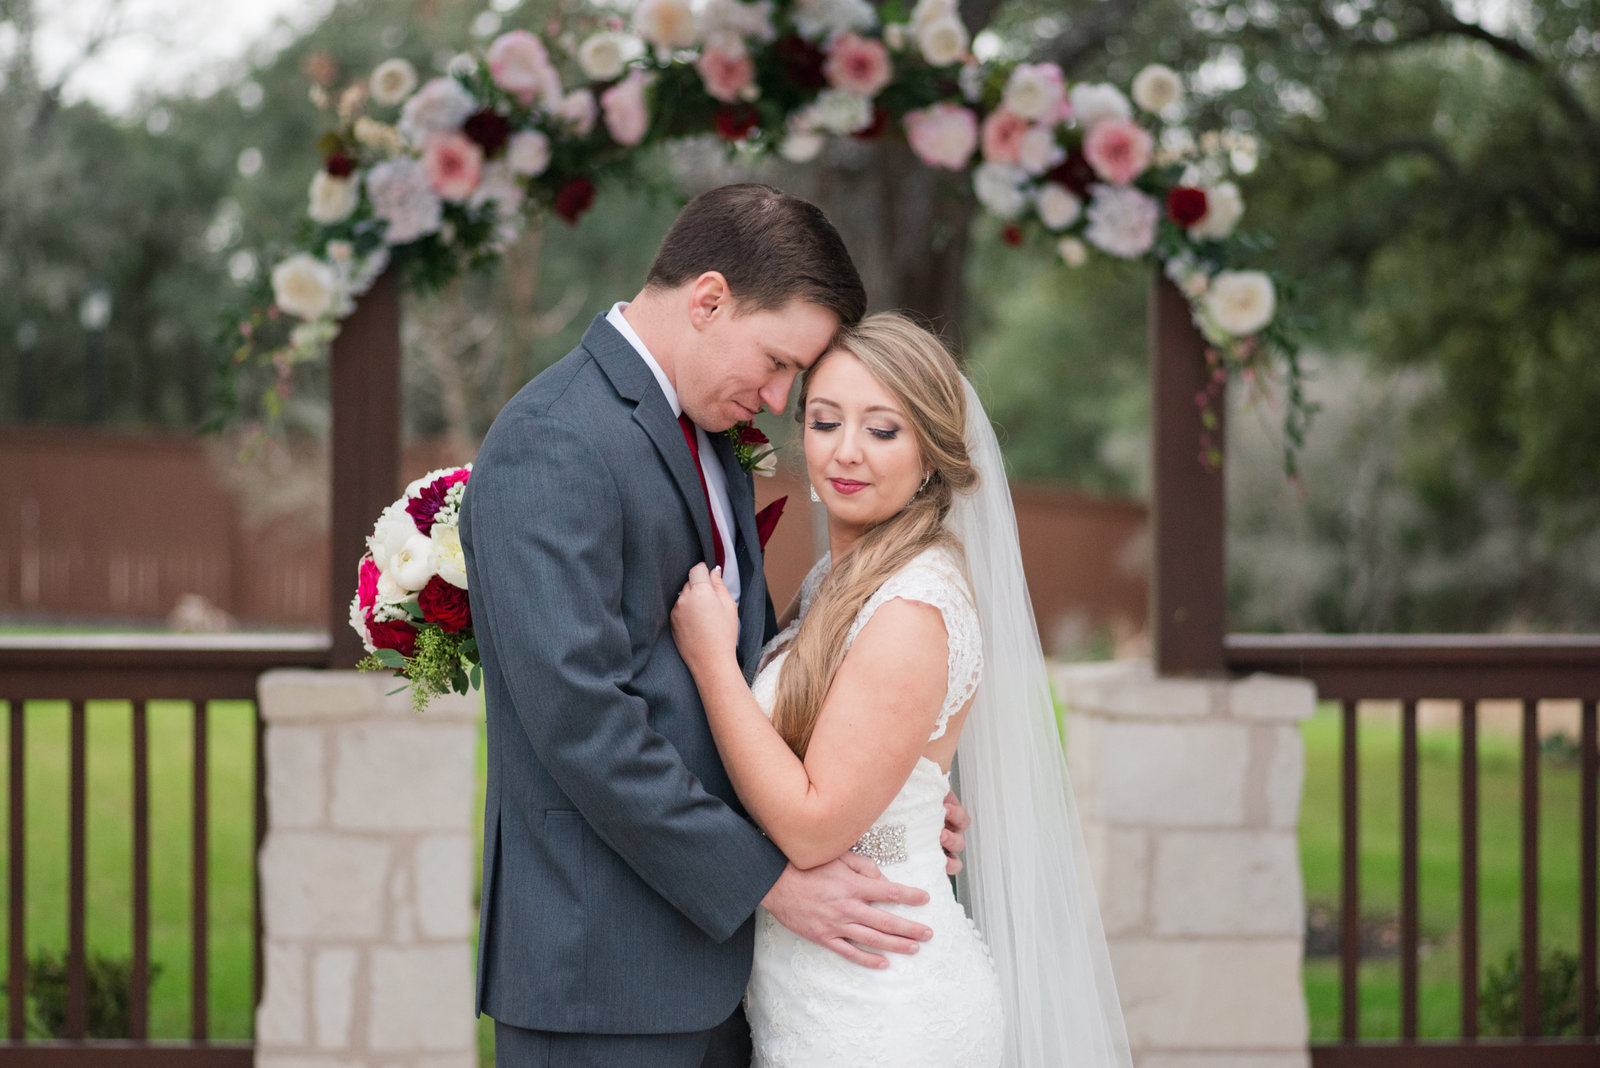 The Springs in Georgetown, Texas wedding in cranberry